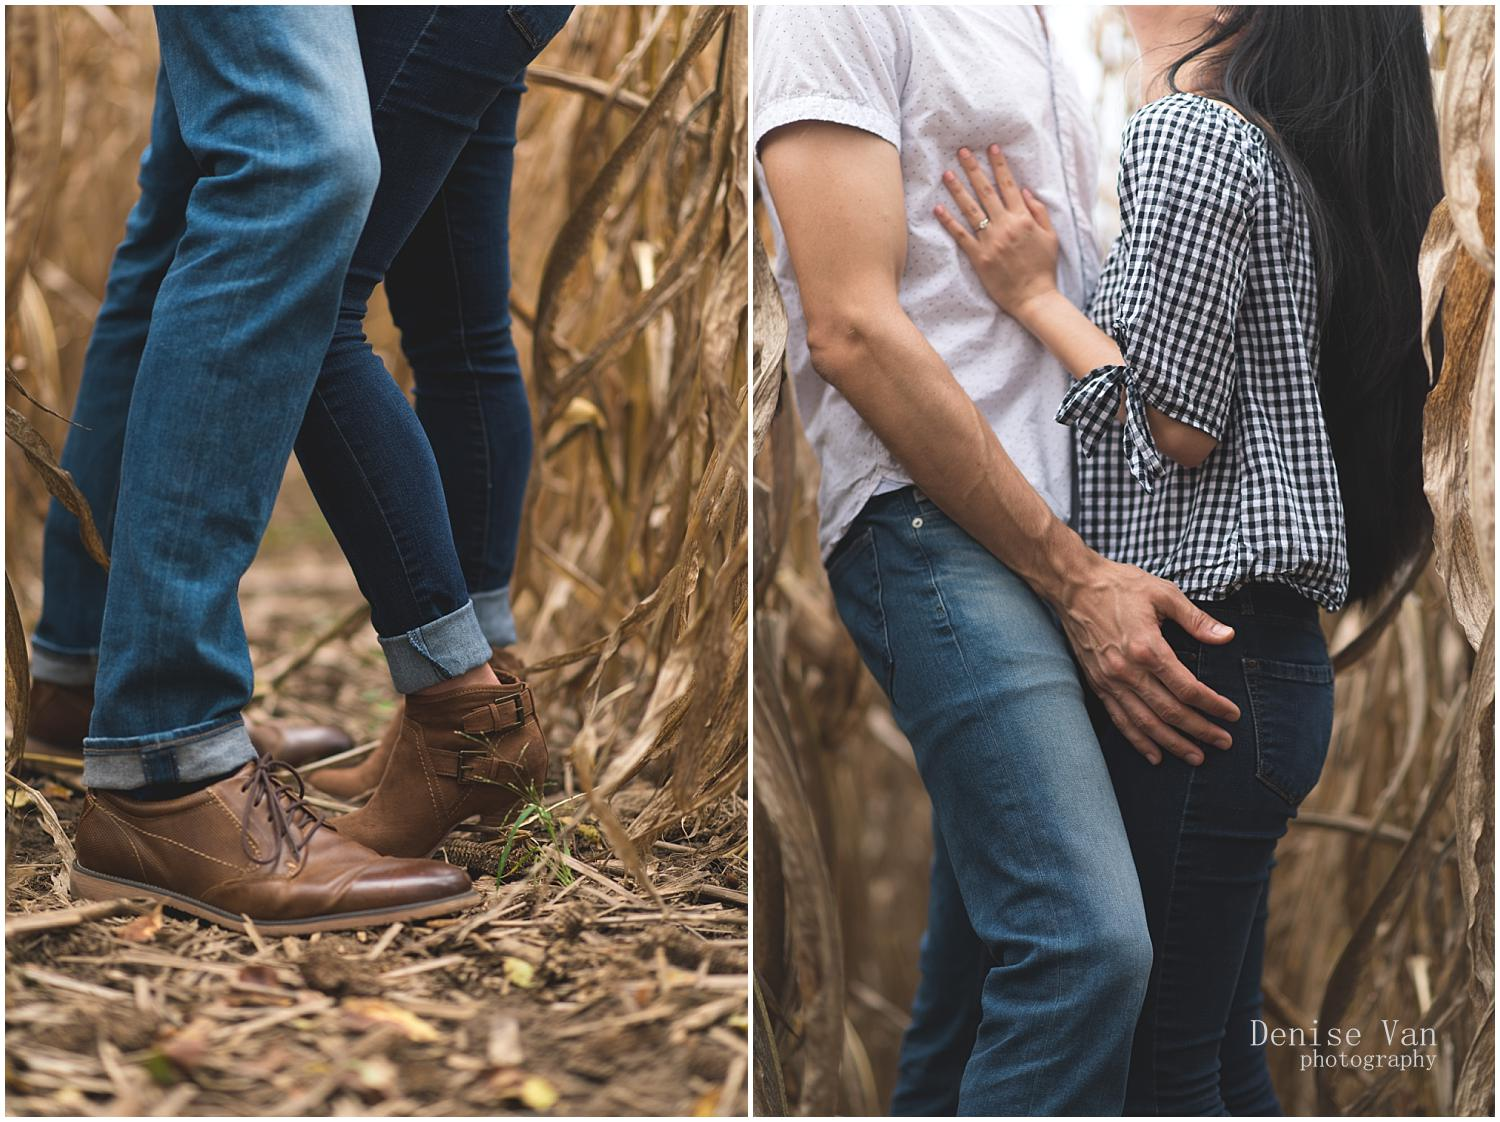 denise-van-engagement-butterbee-farm-maryland_0003.jpg